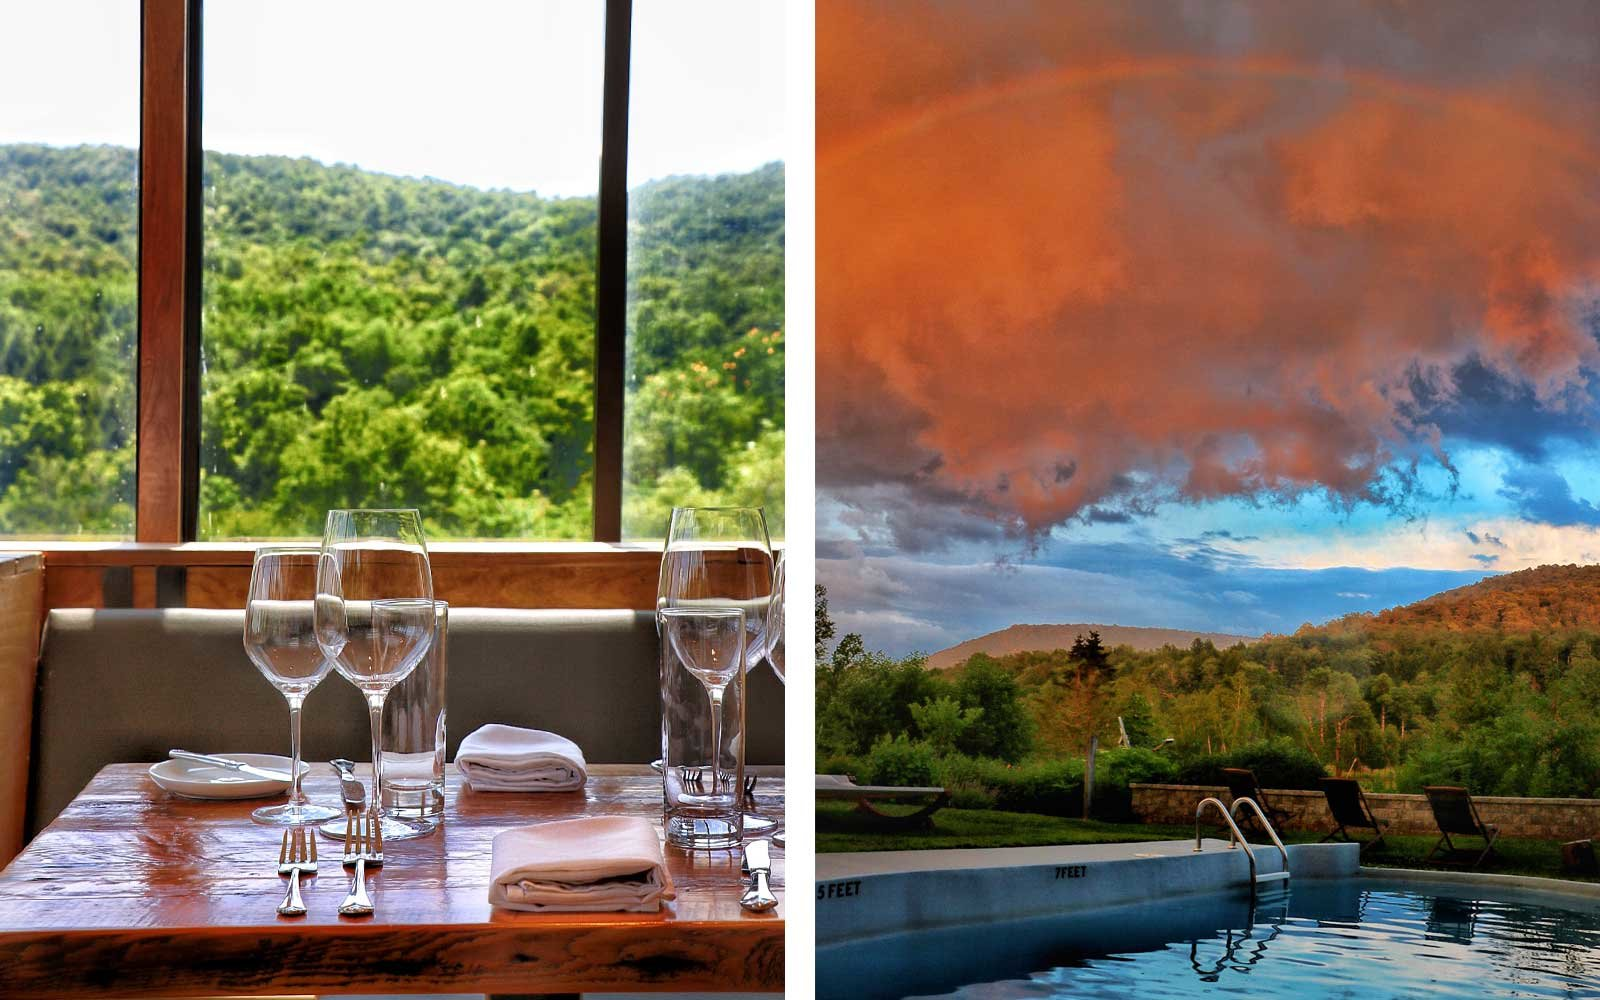 This All-glass Dining Room in the Catskill Mountains Is the Best Place to See Fall Foliage